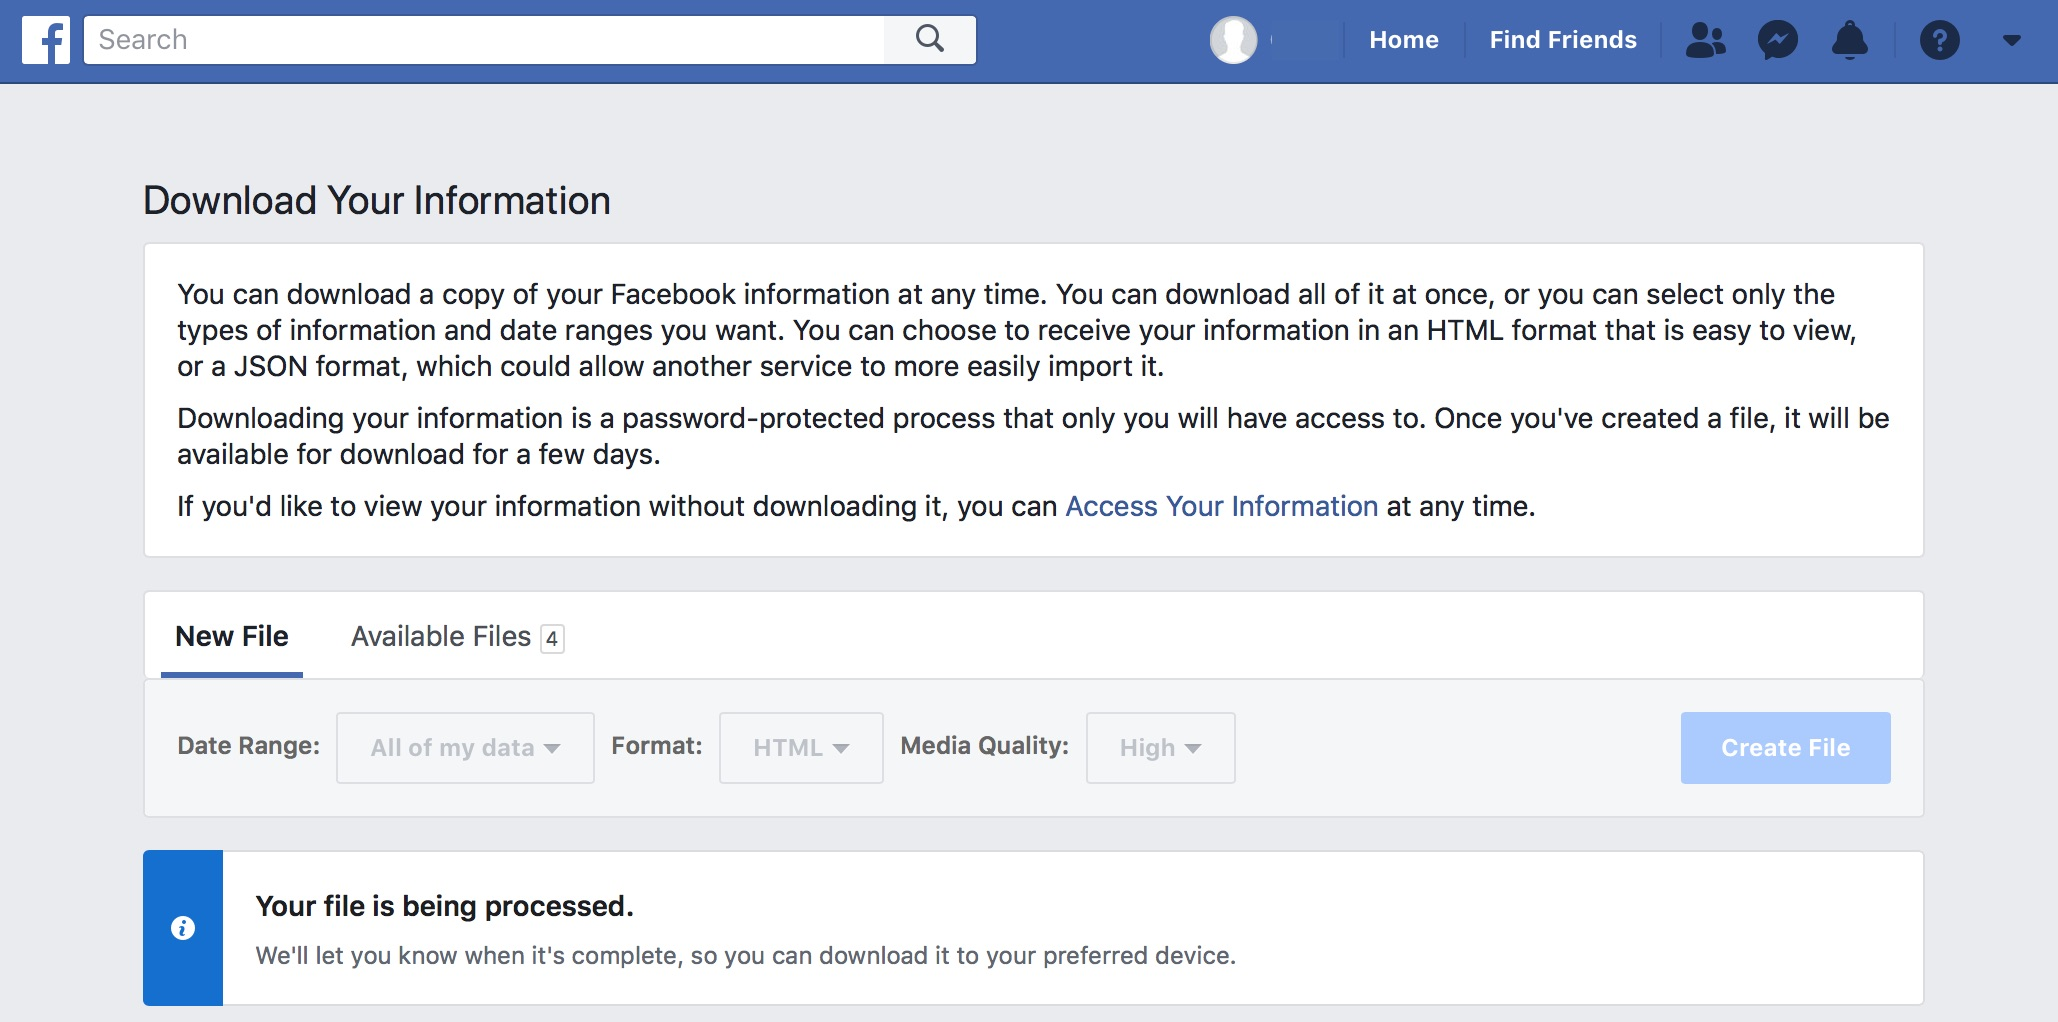 After Requesting Your Facebook Information Download